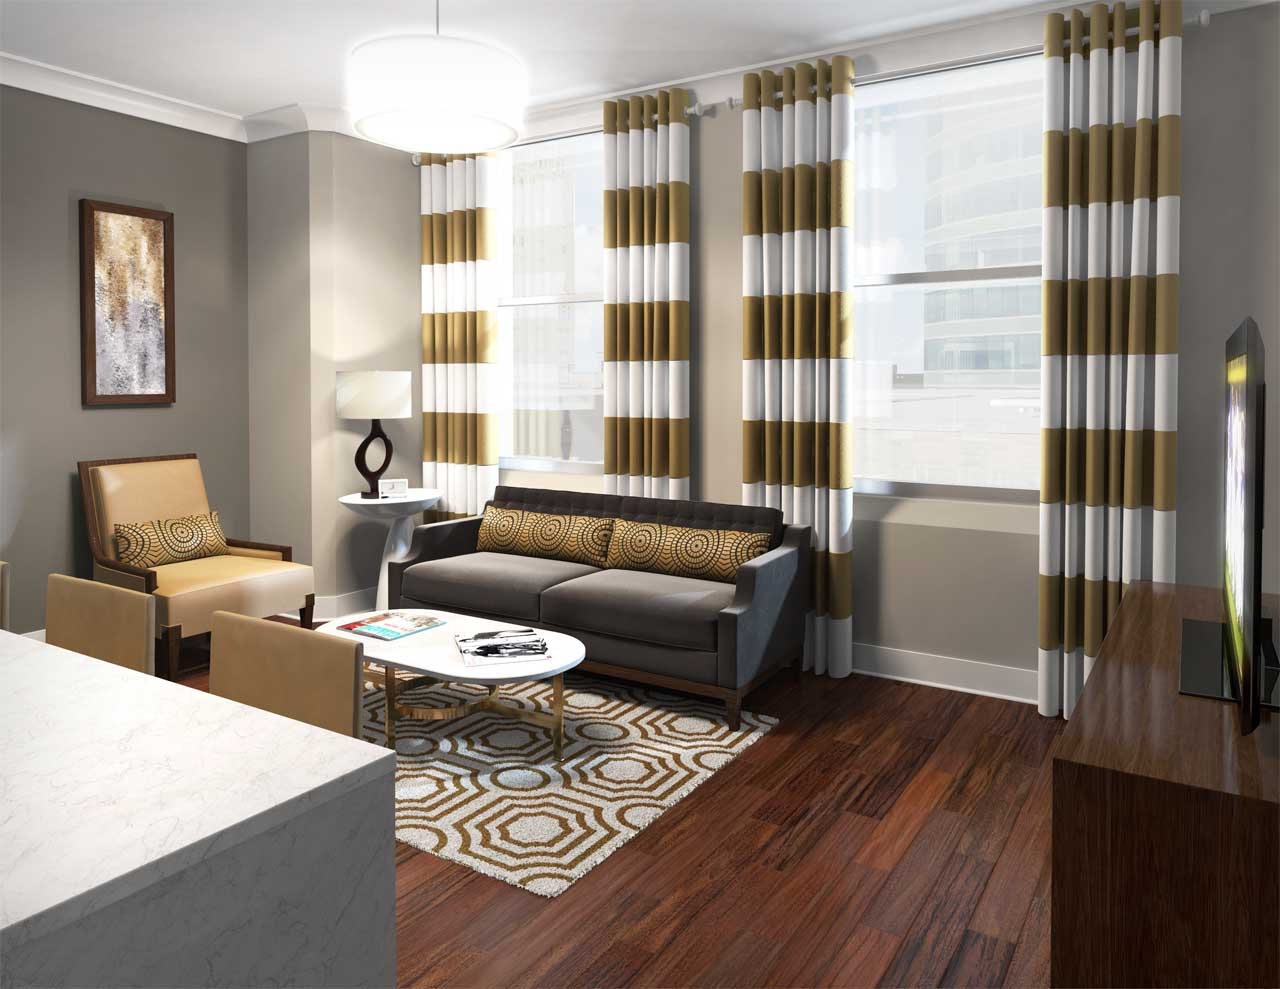 Rendering of a luxury condo with designer furnishings including drapes, coordinated chair and sofa with coffee table and floor rug.